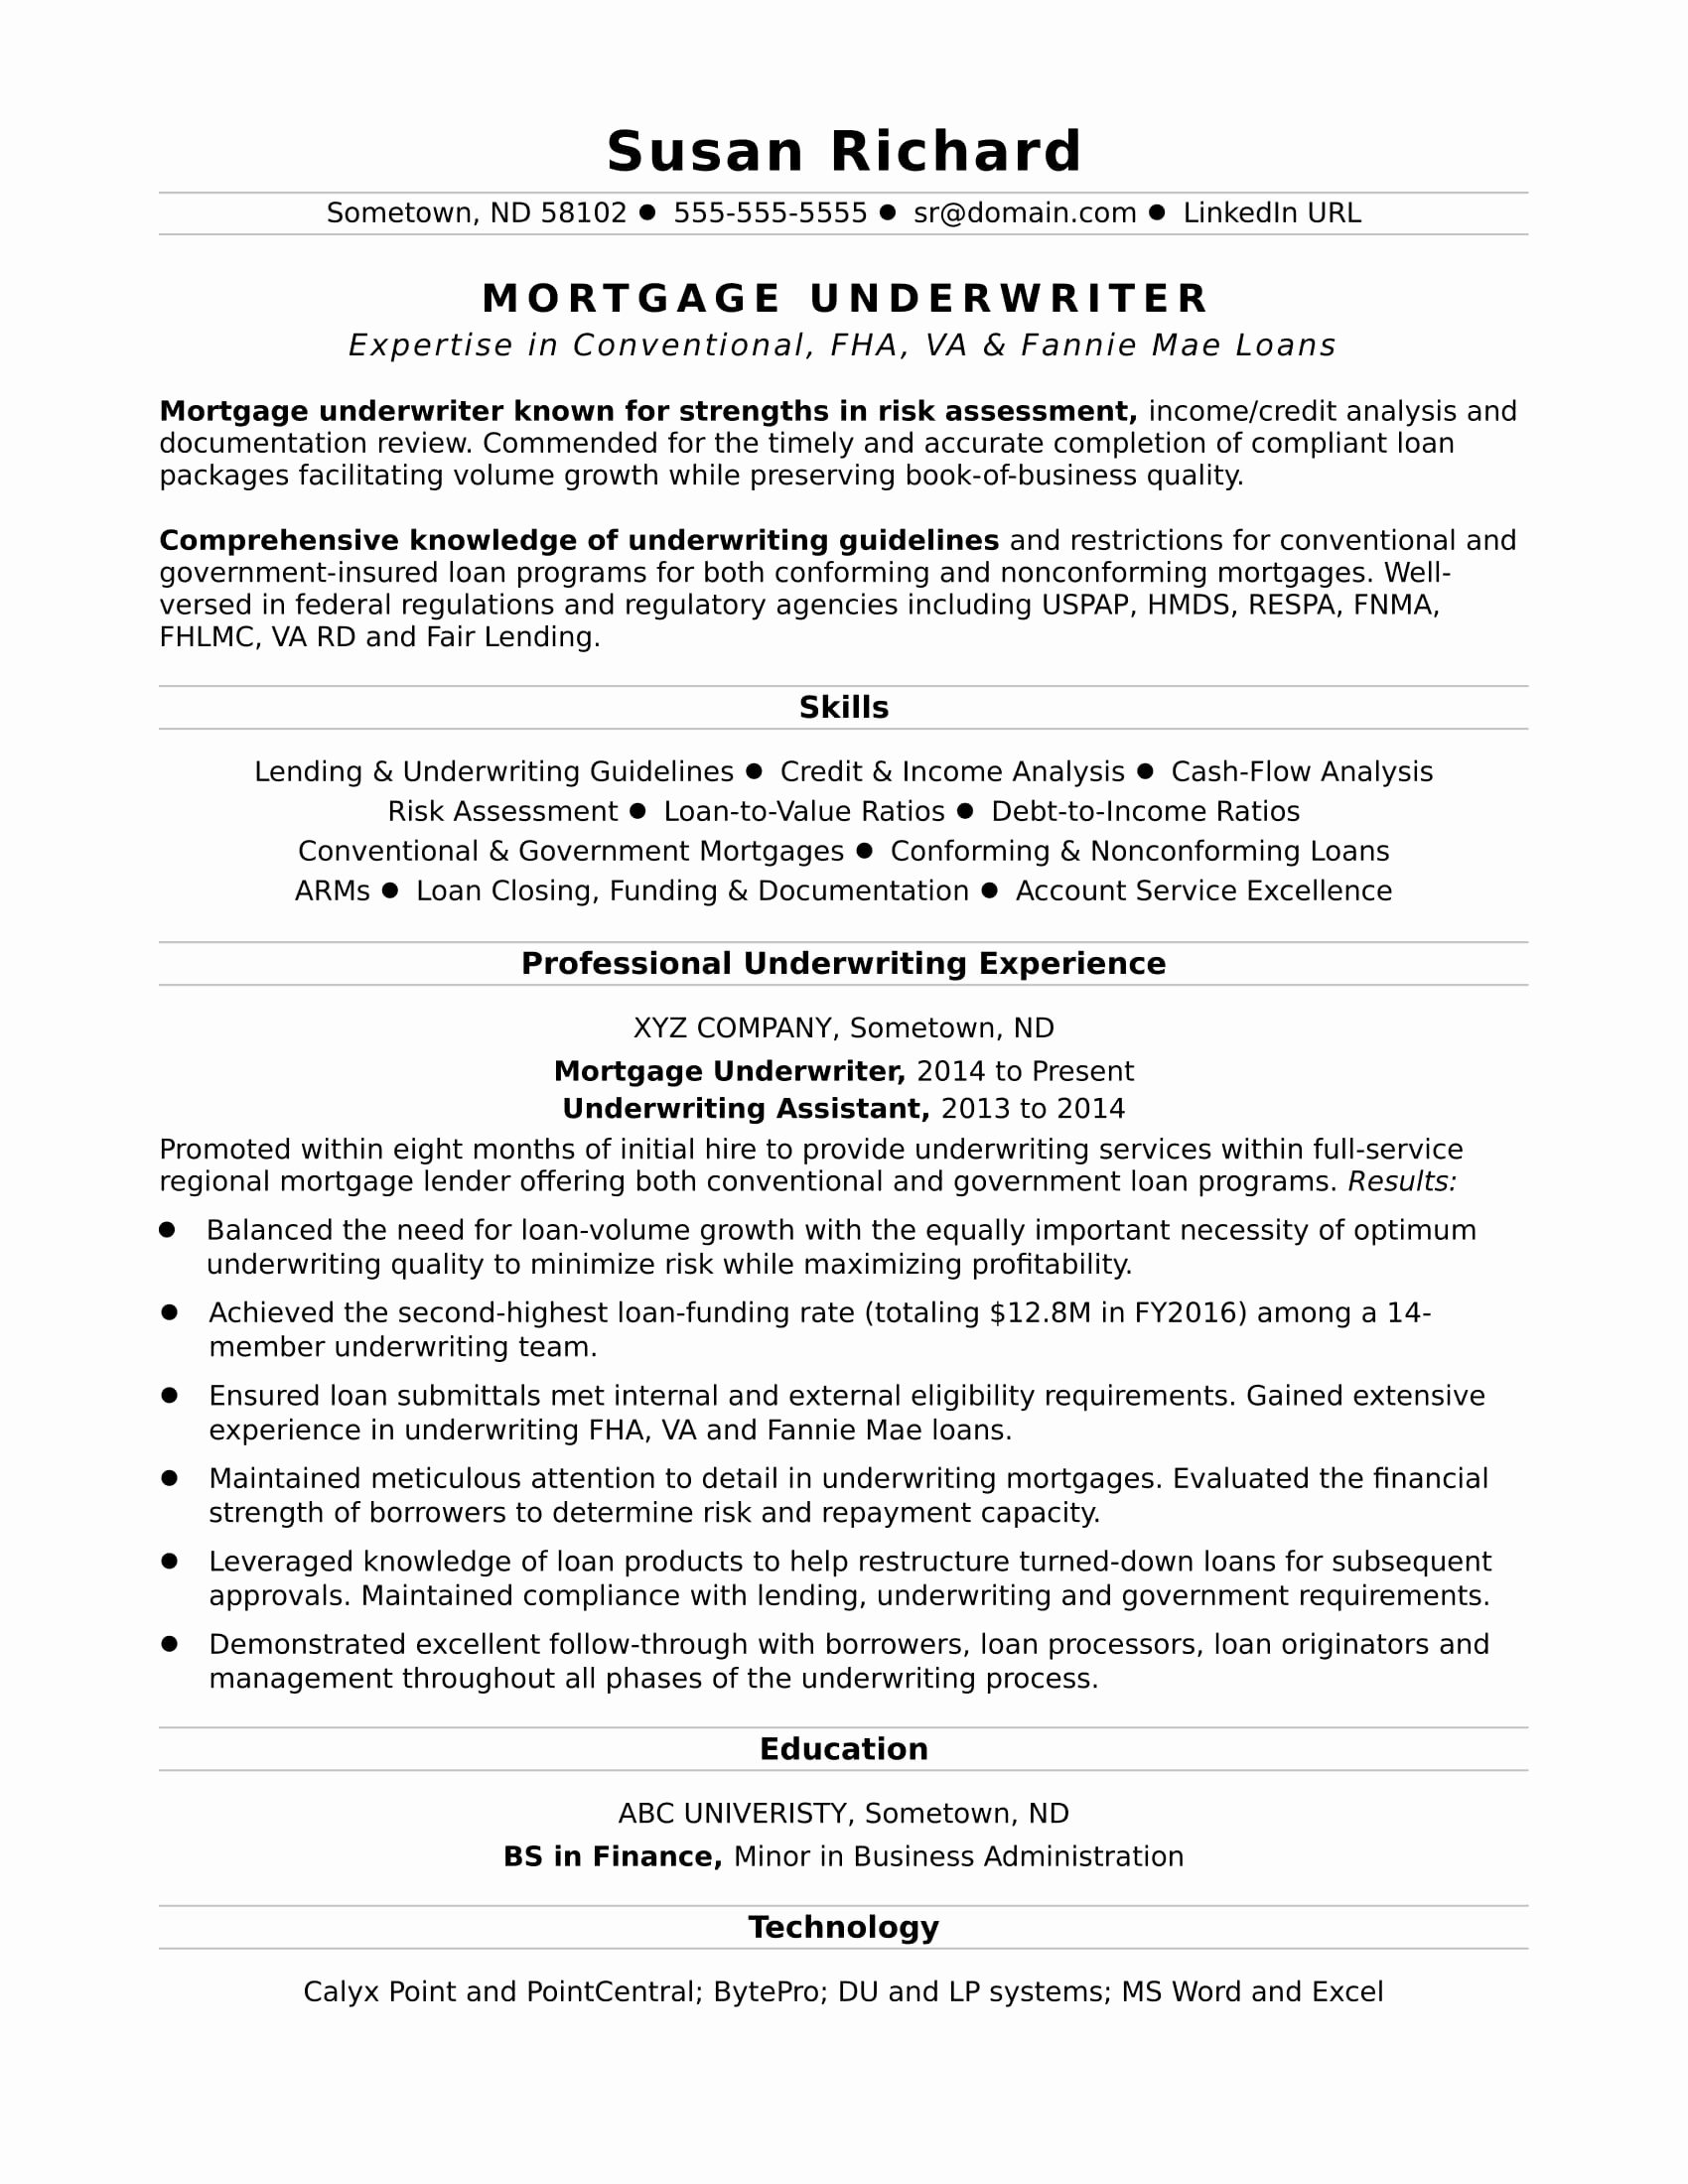 Cover Letter Template 2018 - Underwriter Cover Letter Lovely Detailed Resume Template Luxury